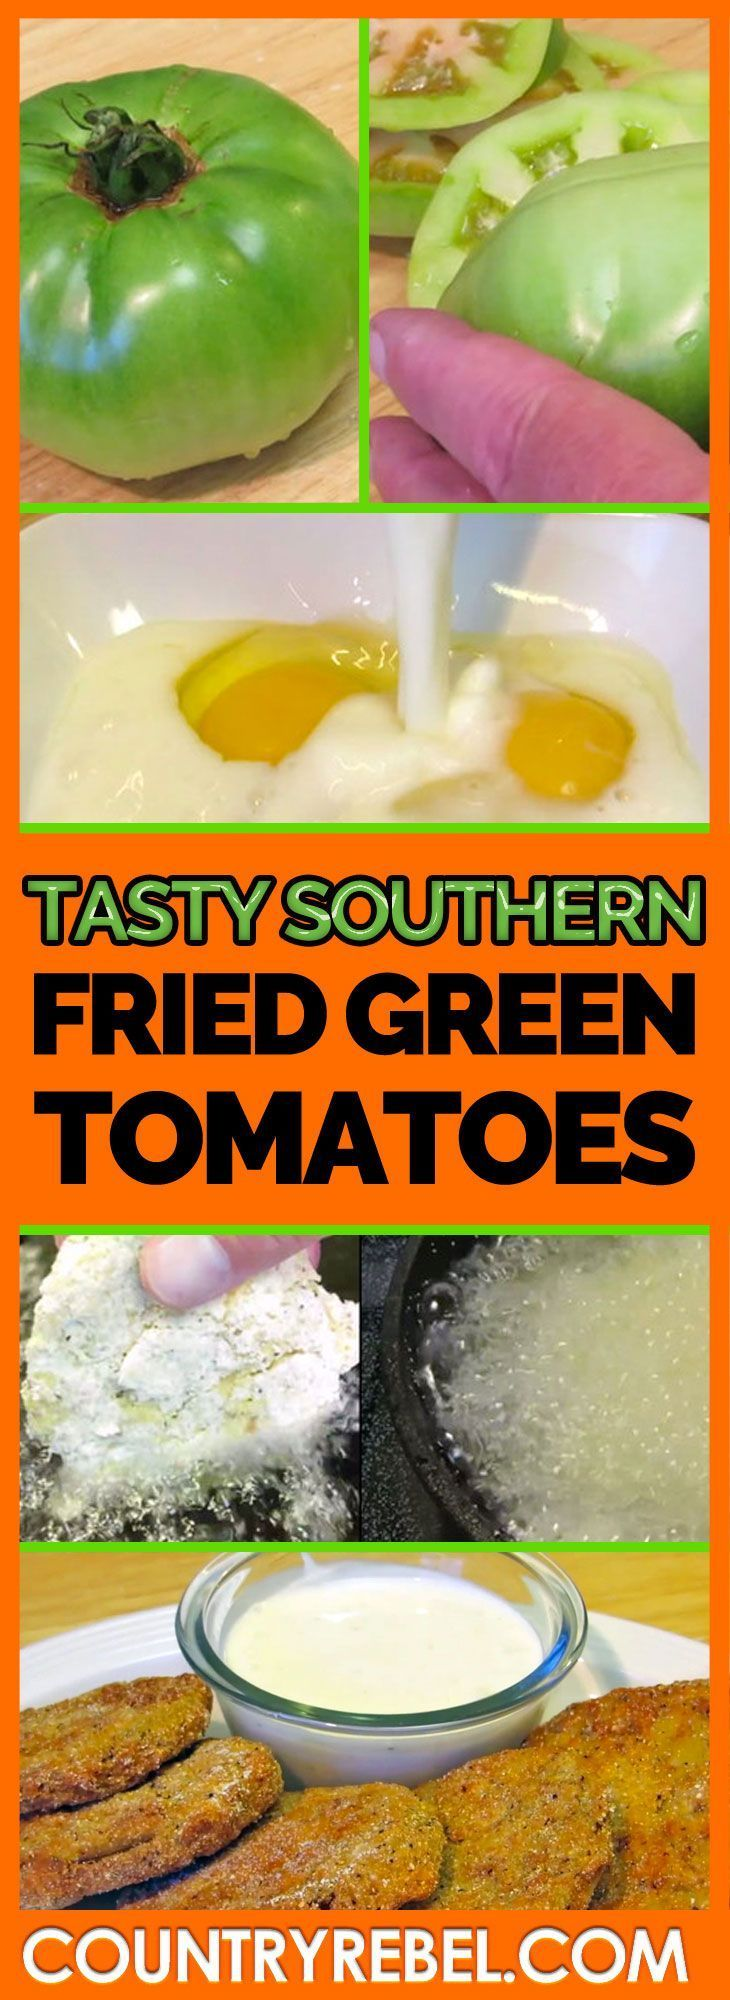 DIY: Y'all Need To Try This Tasty Southern Fried Green Tomato Recipe! (WATCH)